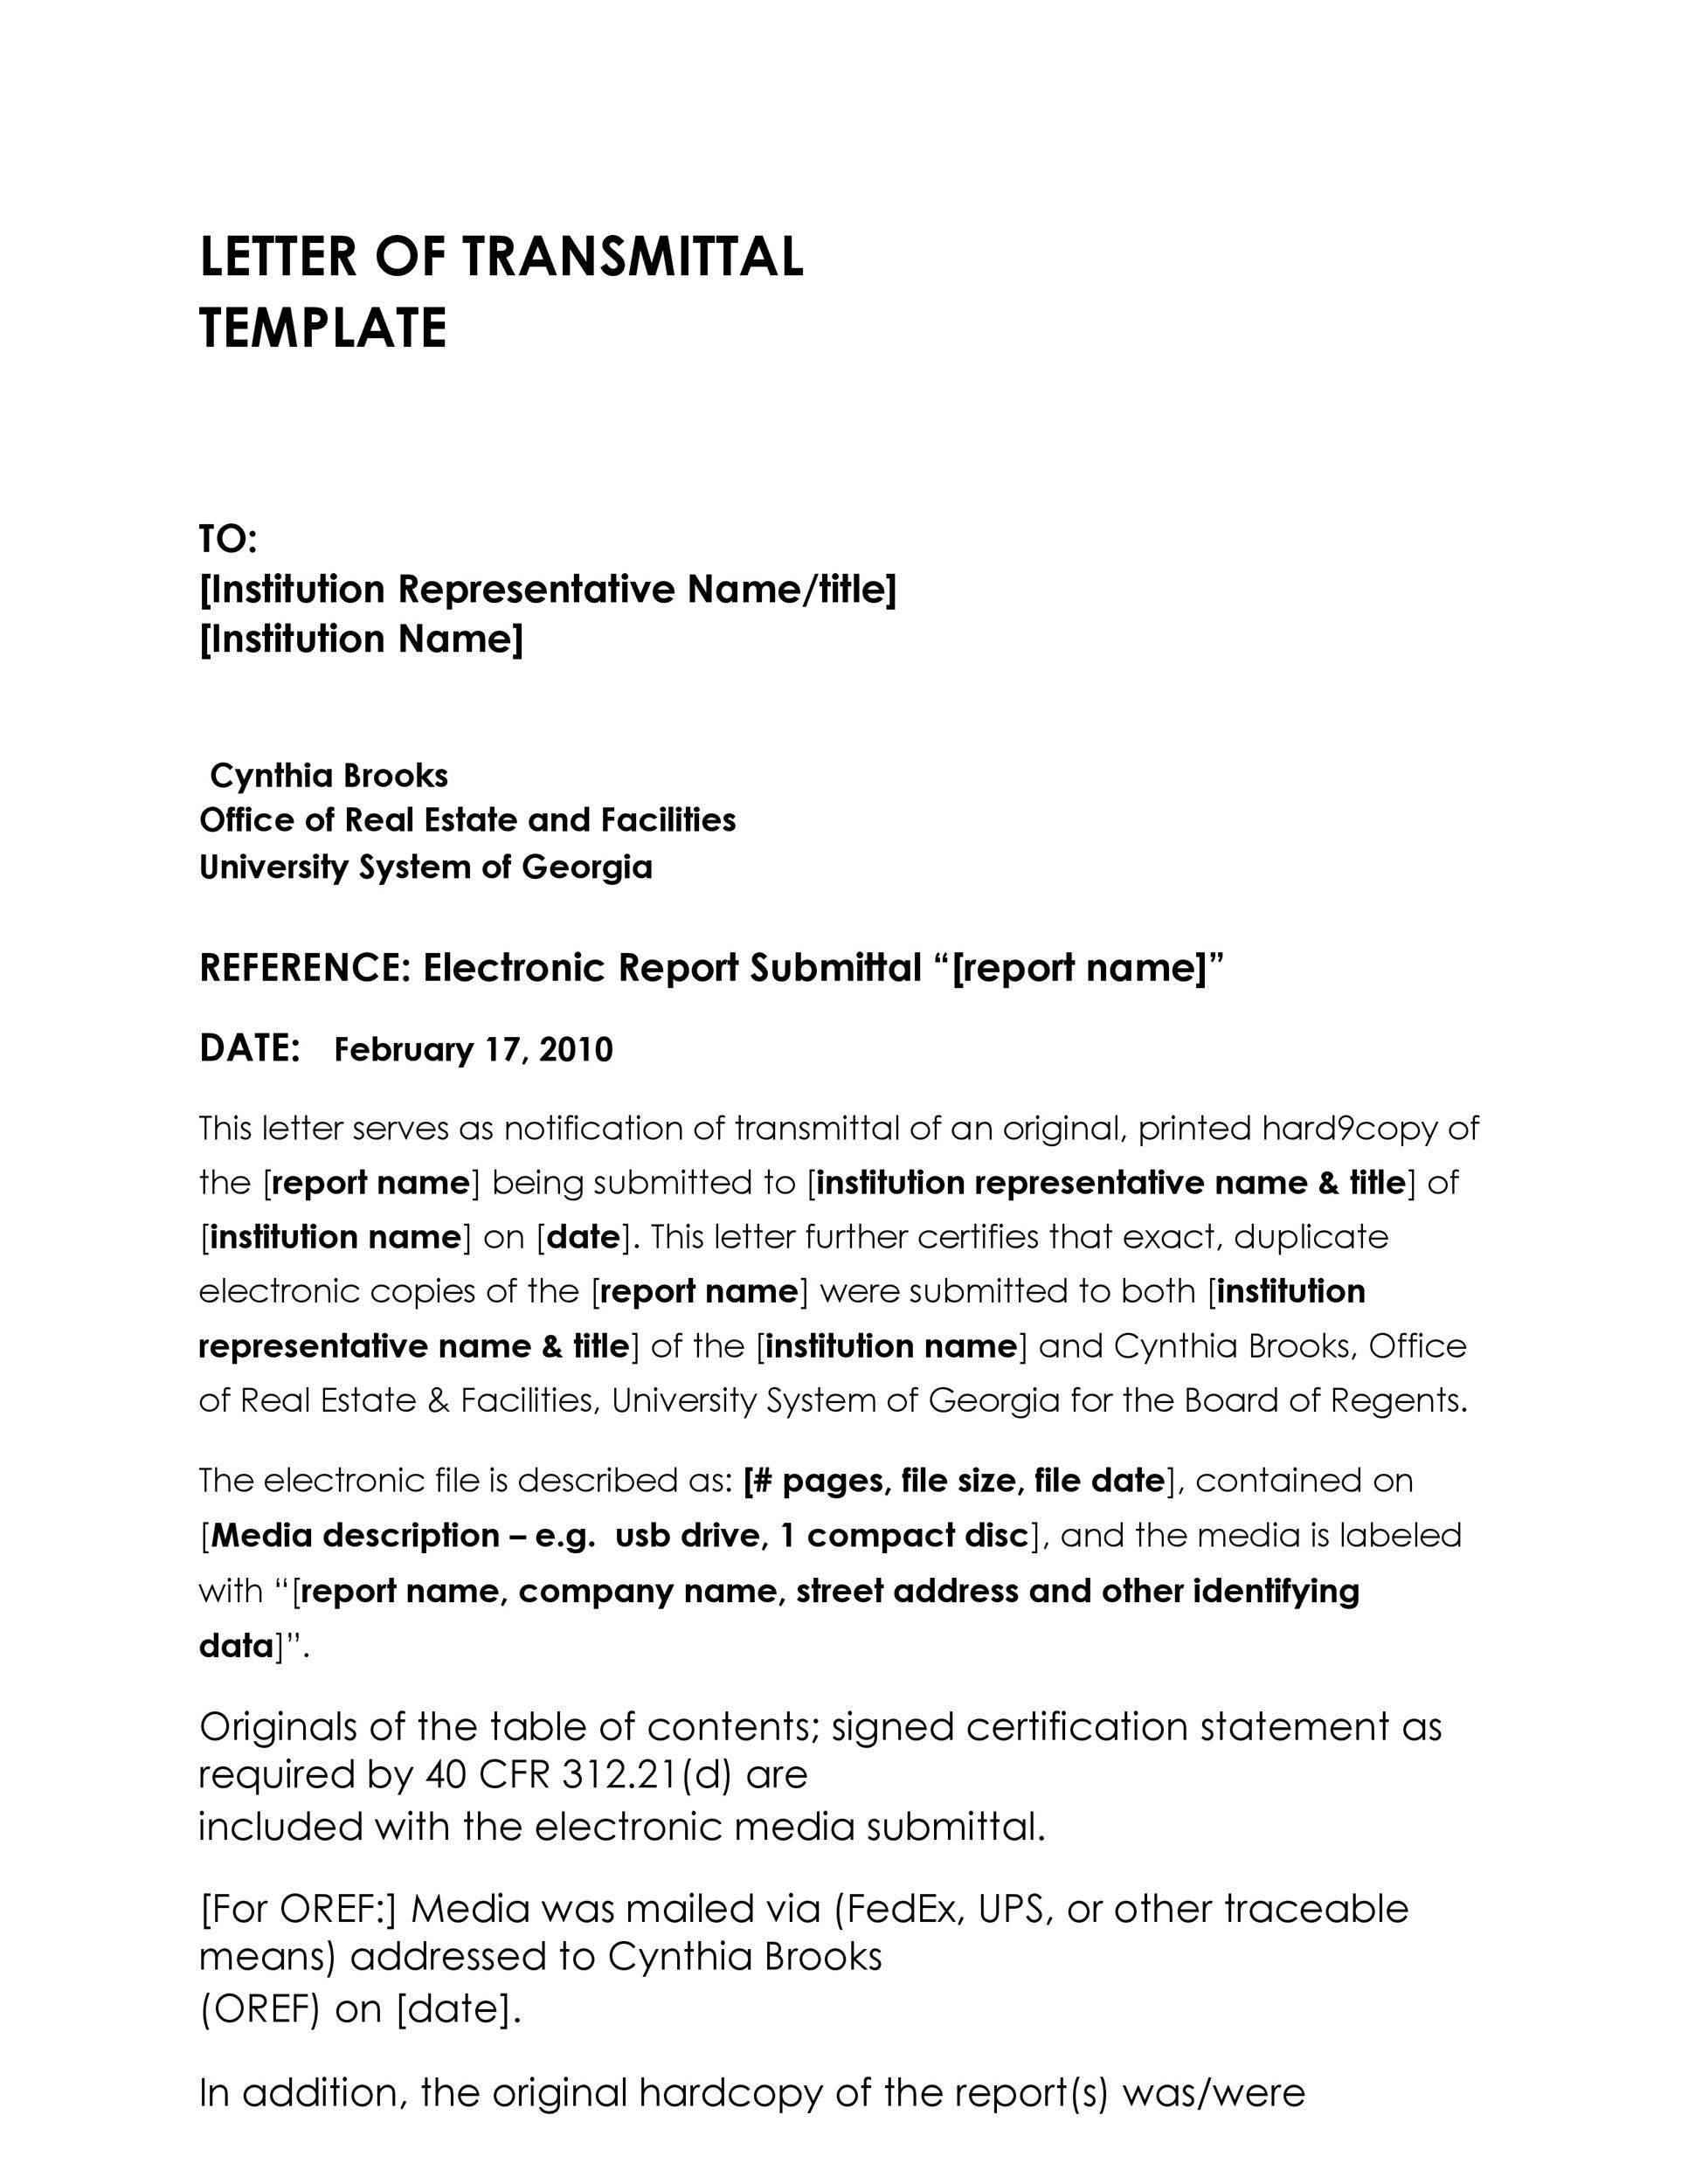 Printable Letter Of Transmittal Template 09  Letter Of Transmittal Sample